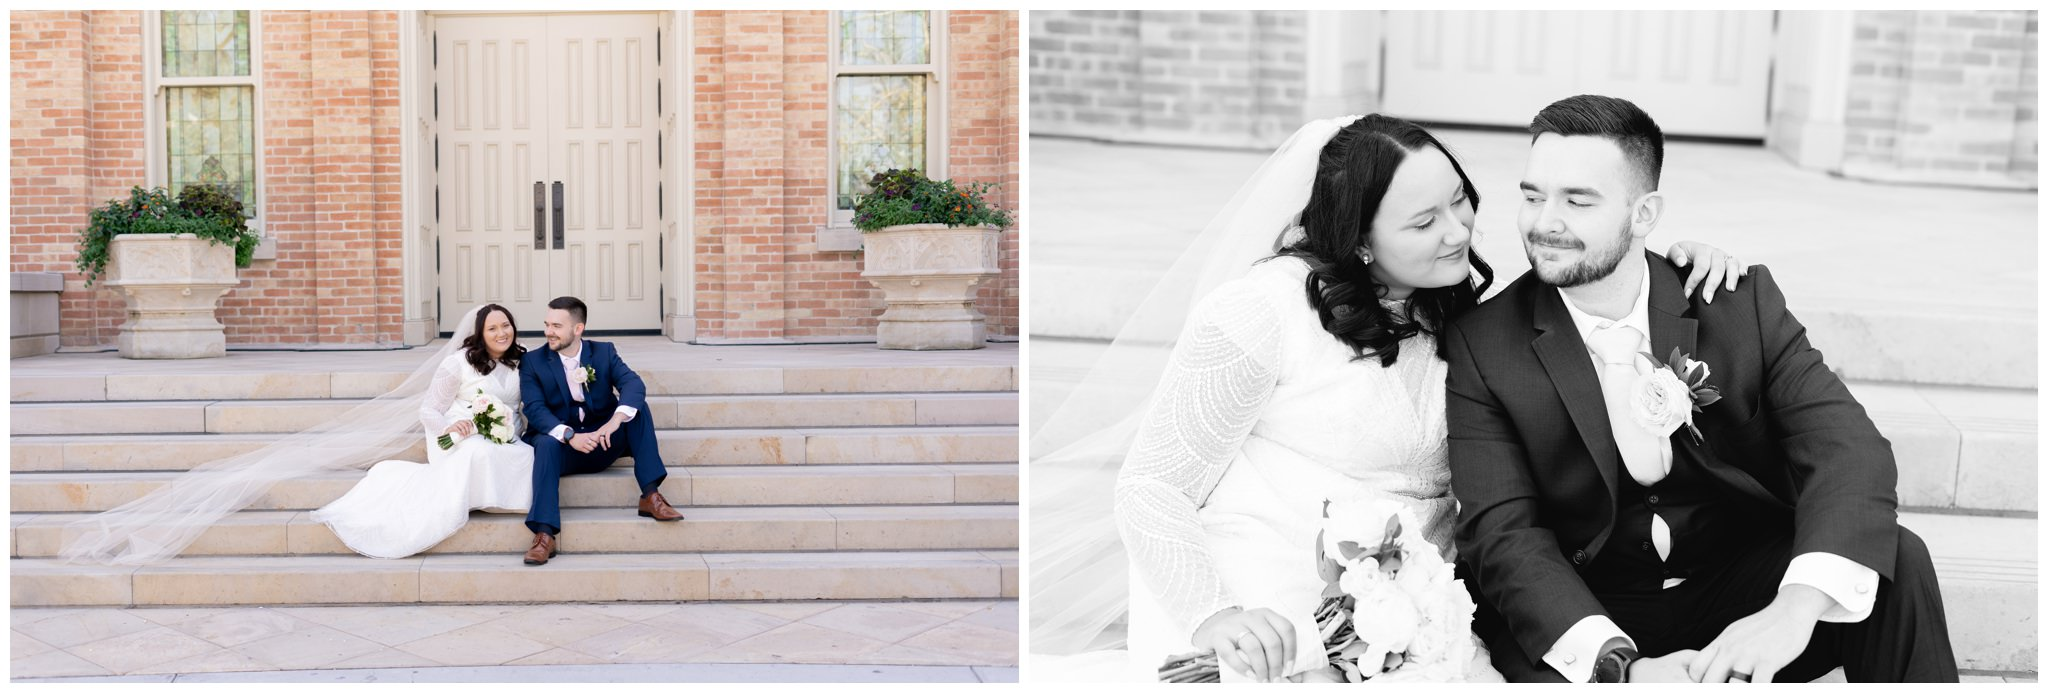 Bride and Groom sitting on stairs at the lds temple